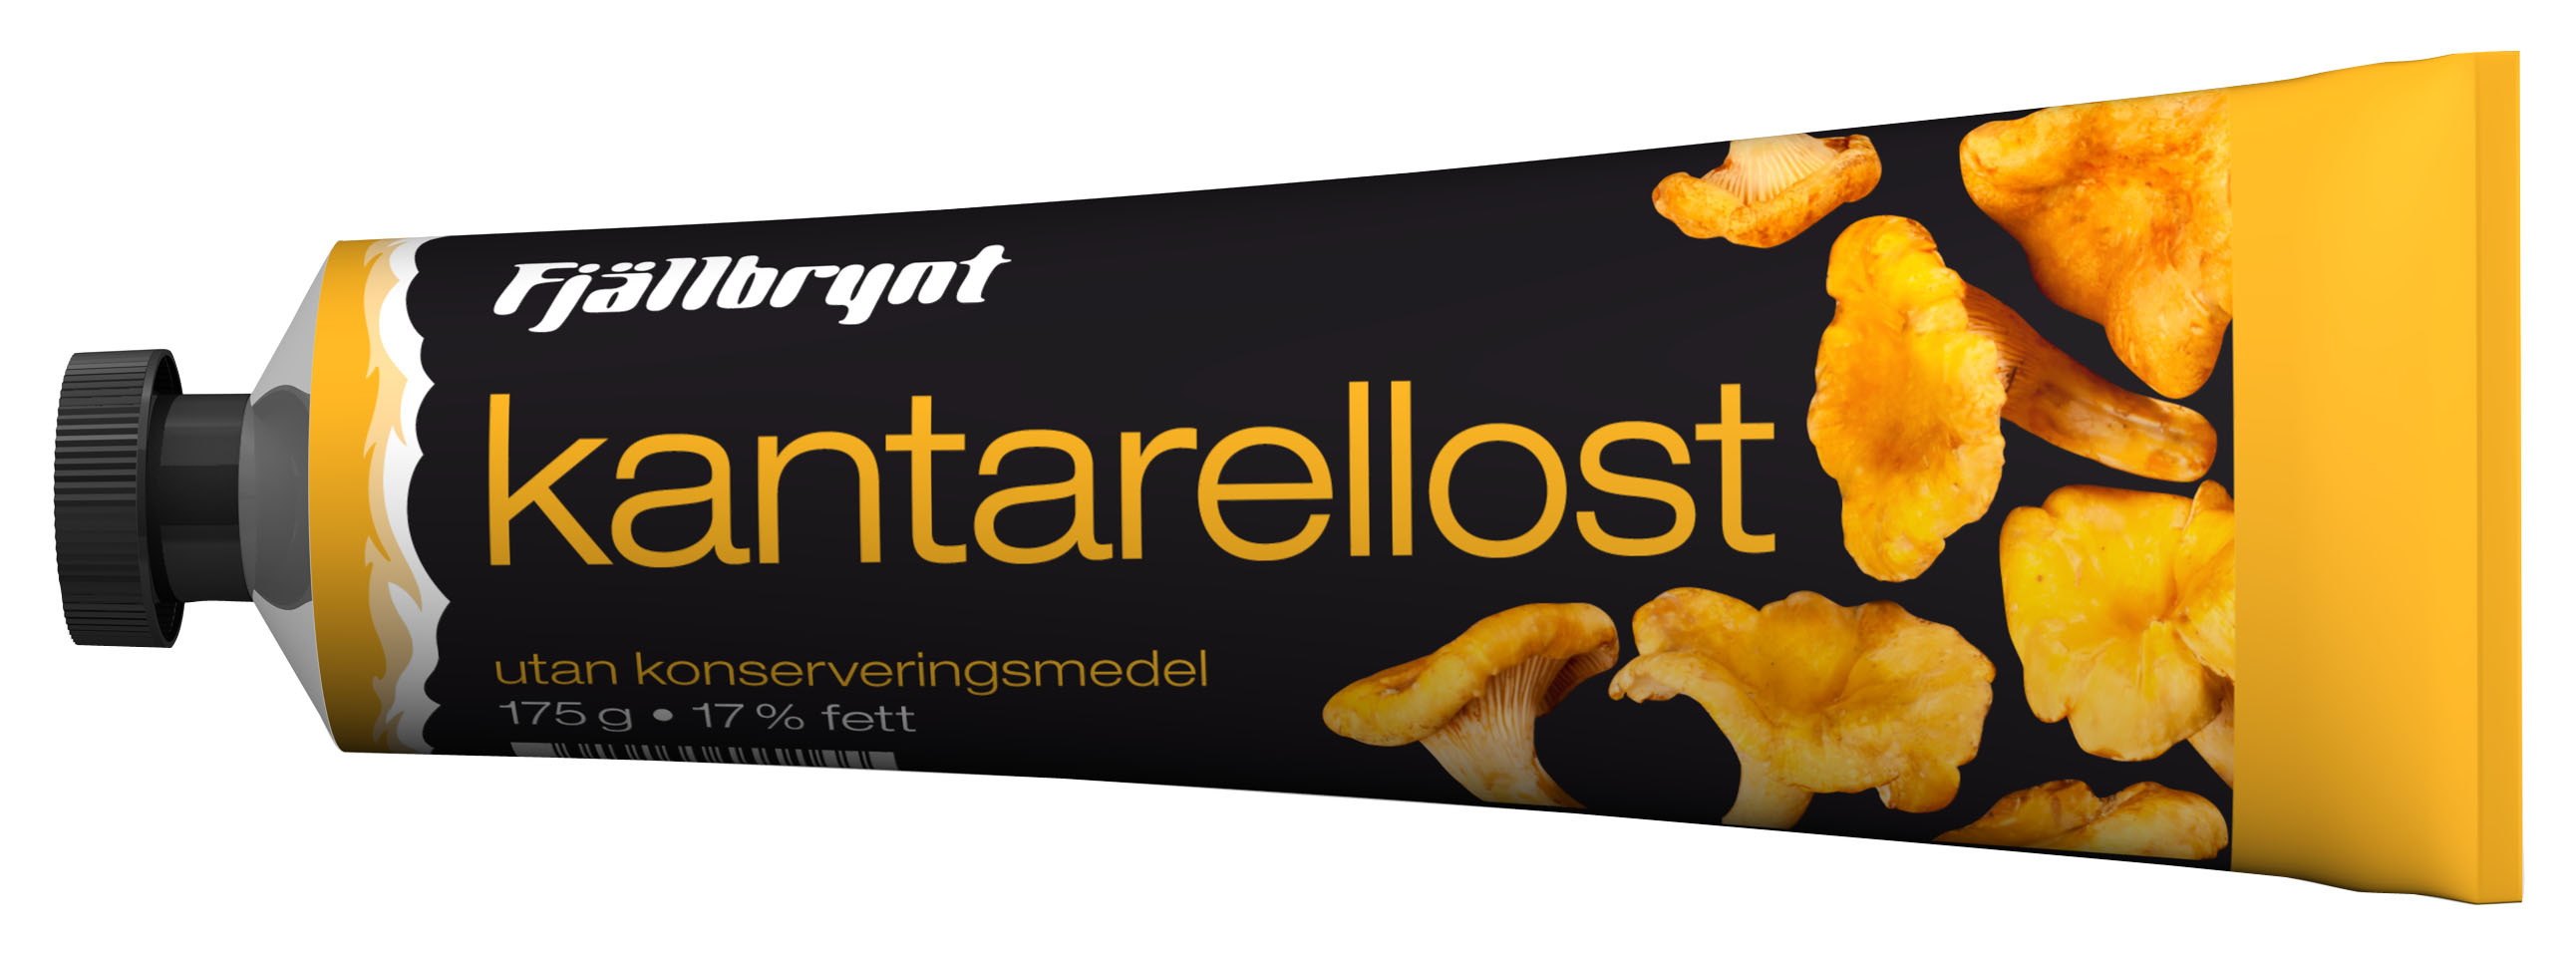 Chanterelle cheese in a tube, food in tubes collection at ateriet